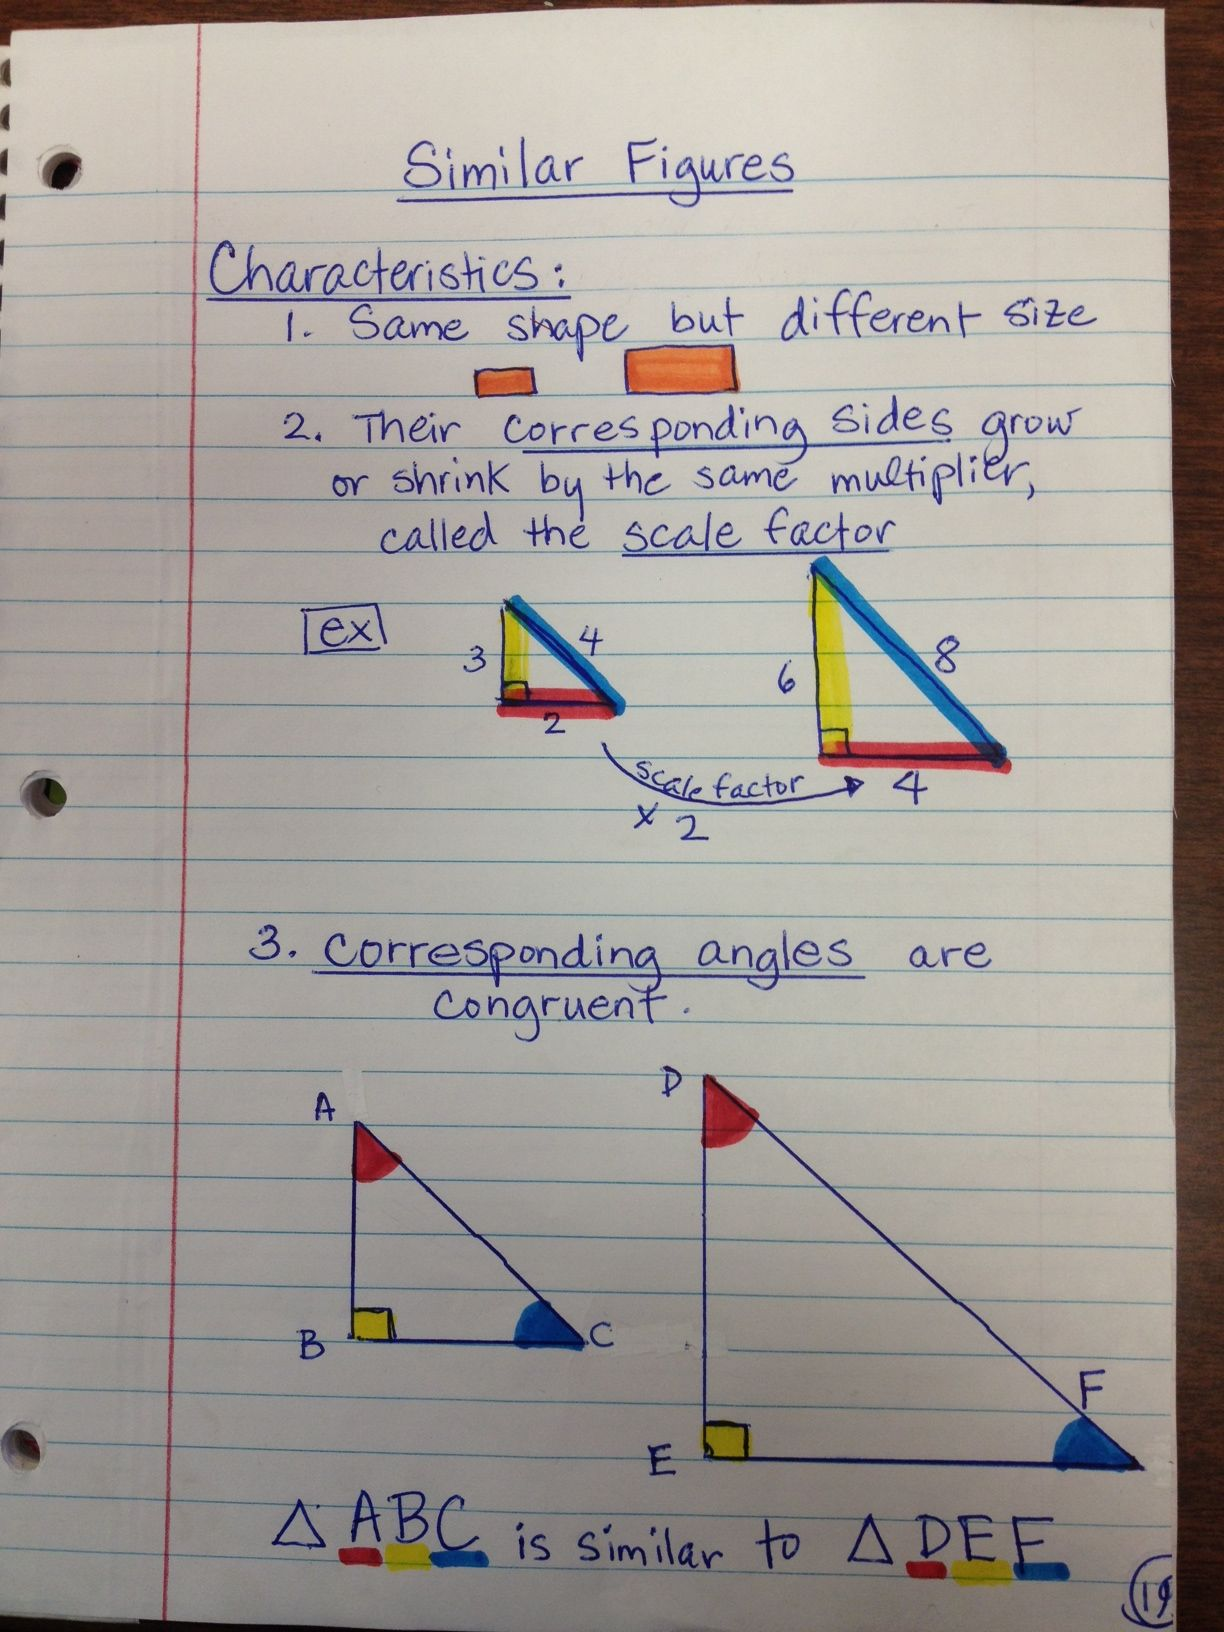 hight resolution of 7th Grade Triangles Worksheet   Printable Worksheets and Activities for  Teachers